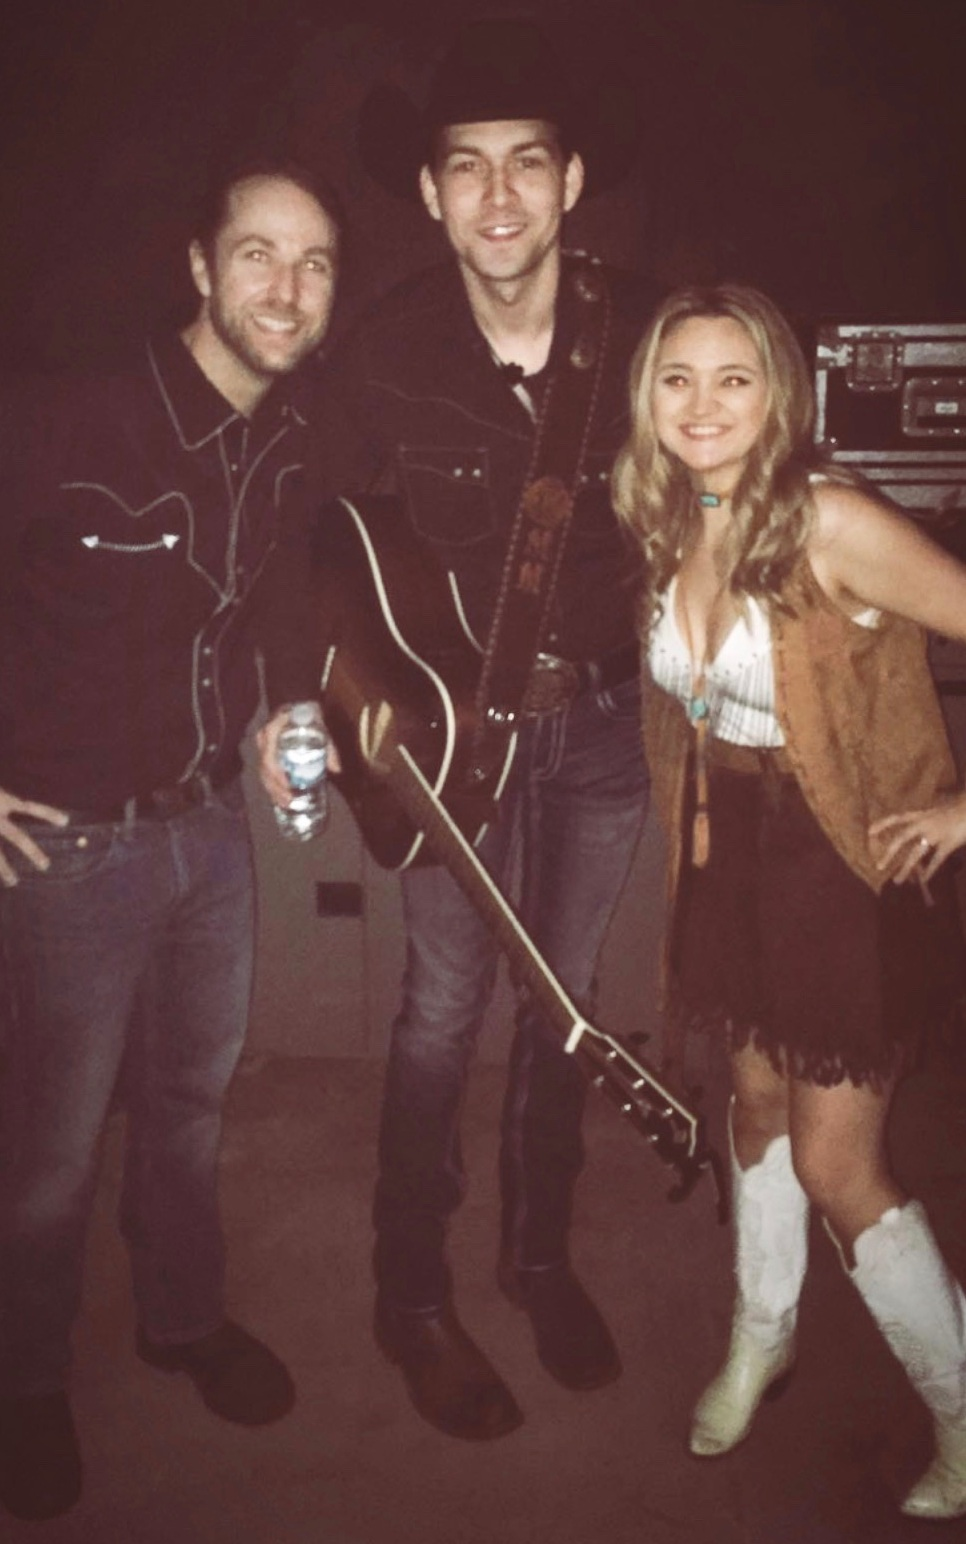 Francelle was the Opening Act on the Alan Jackson Tour with special guest William Michael Morgan.